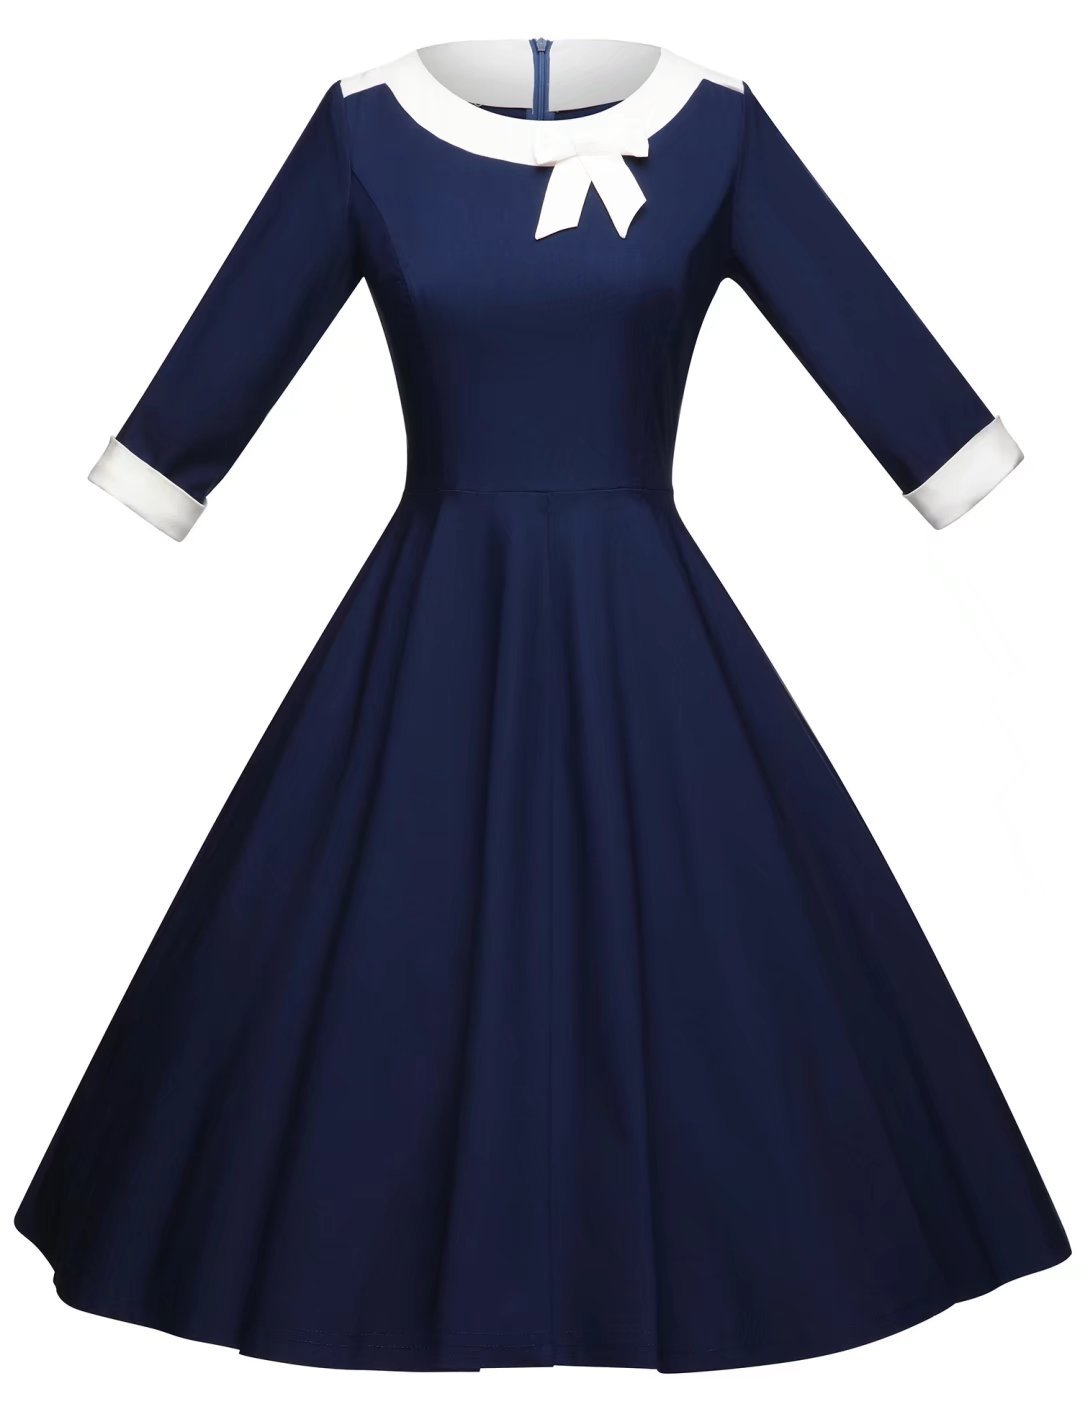 GownTown Womens Dresses 1950s Vintage Dresses 3/4 Sleeves Pocket Bowknot Stretchy Dresses